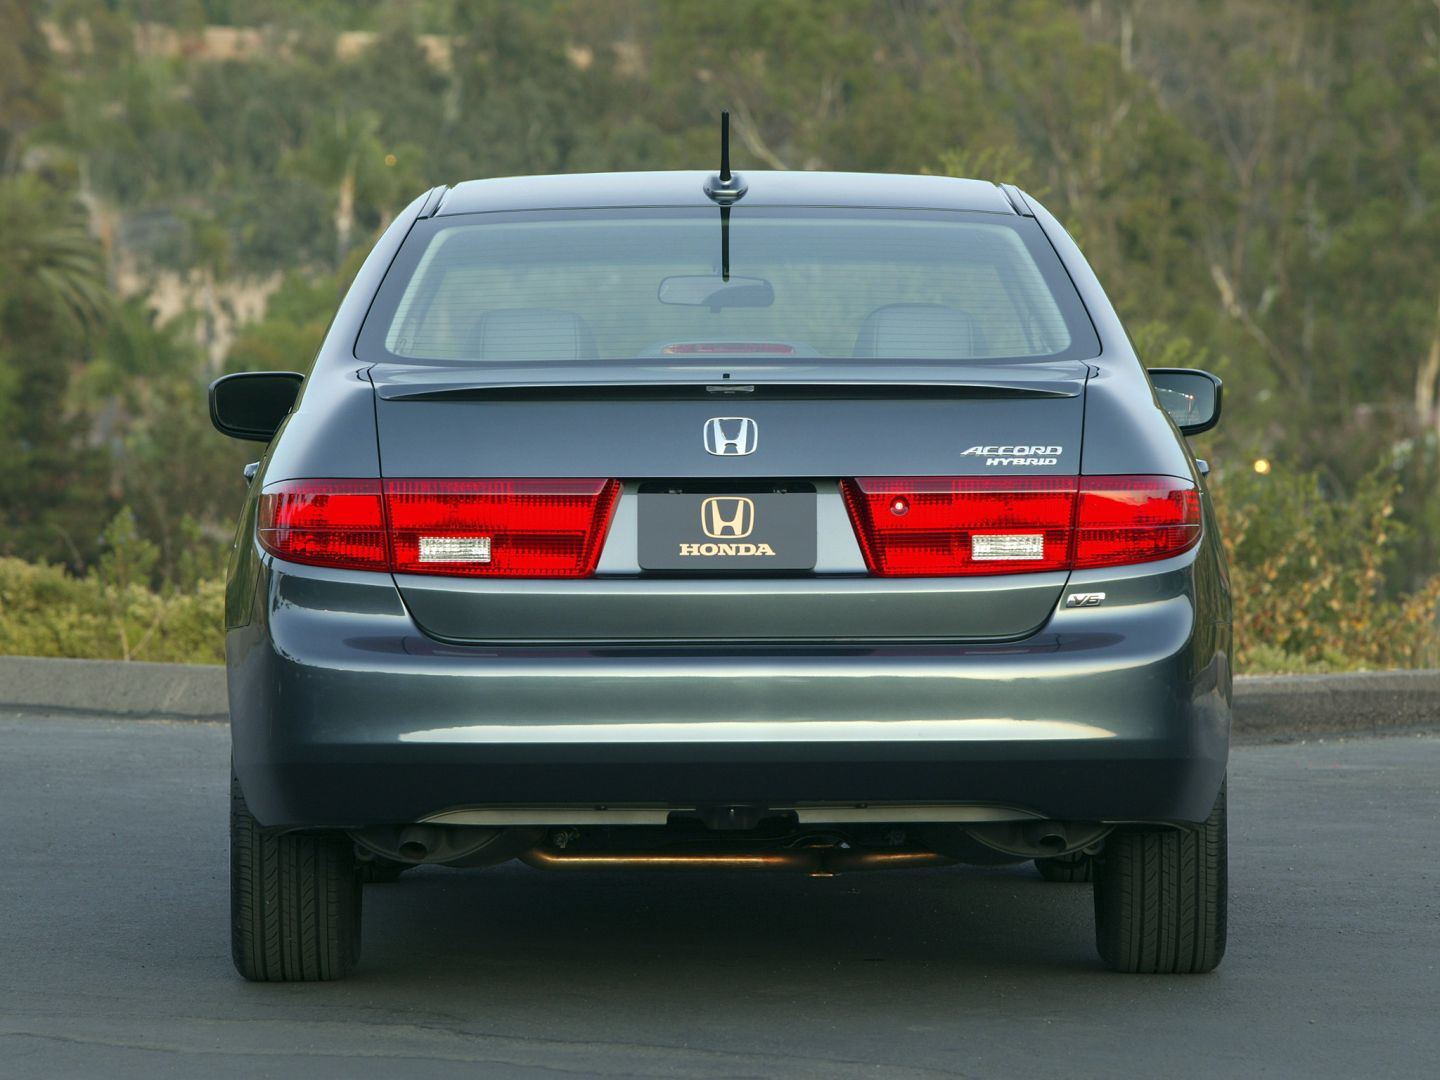 also Hondastream as well Honda Civic Type R X W furthermore Honda Accord Sedan Us further Large. on 2005 honda civic lights